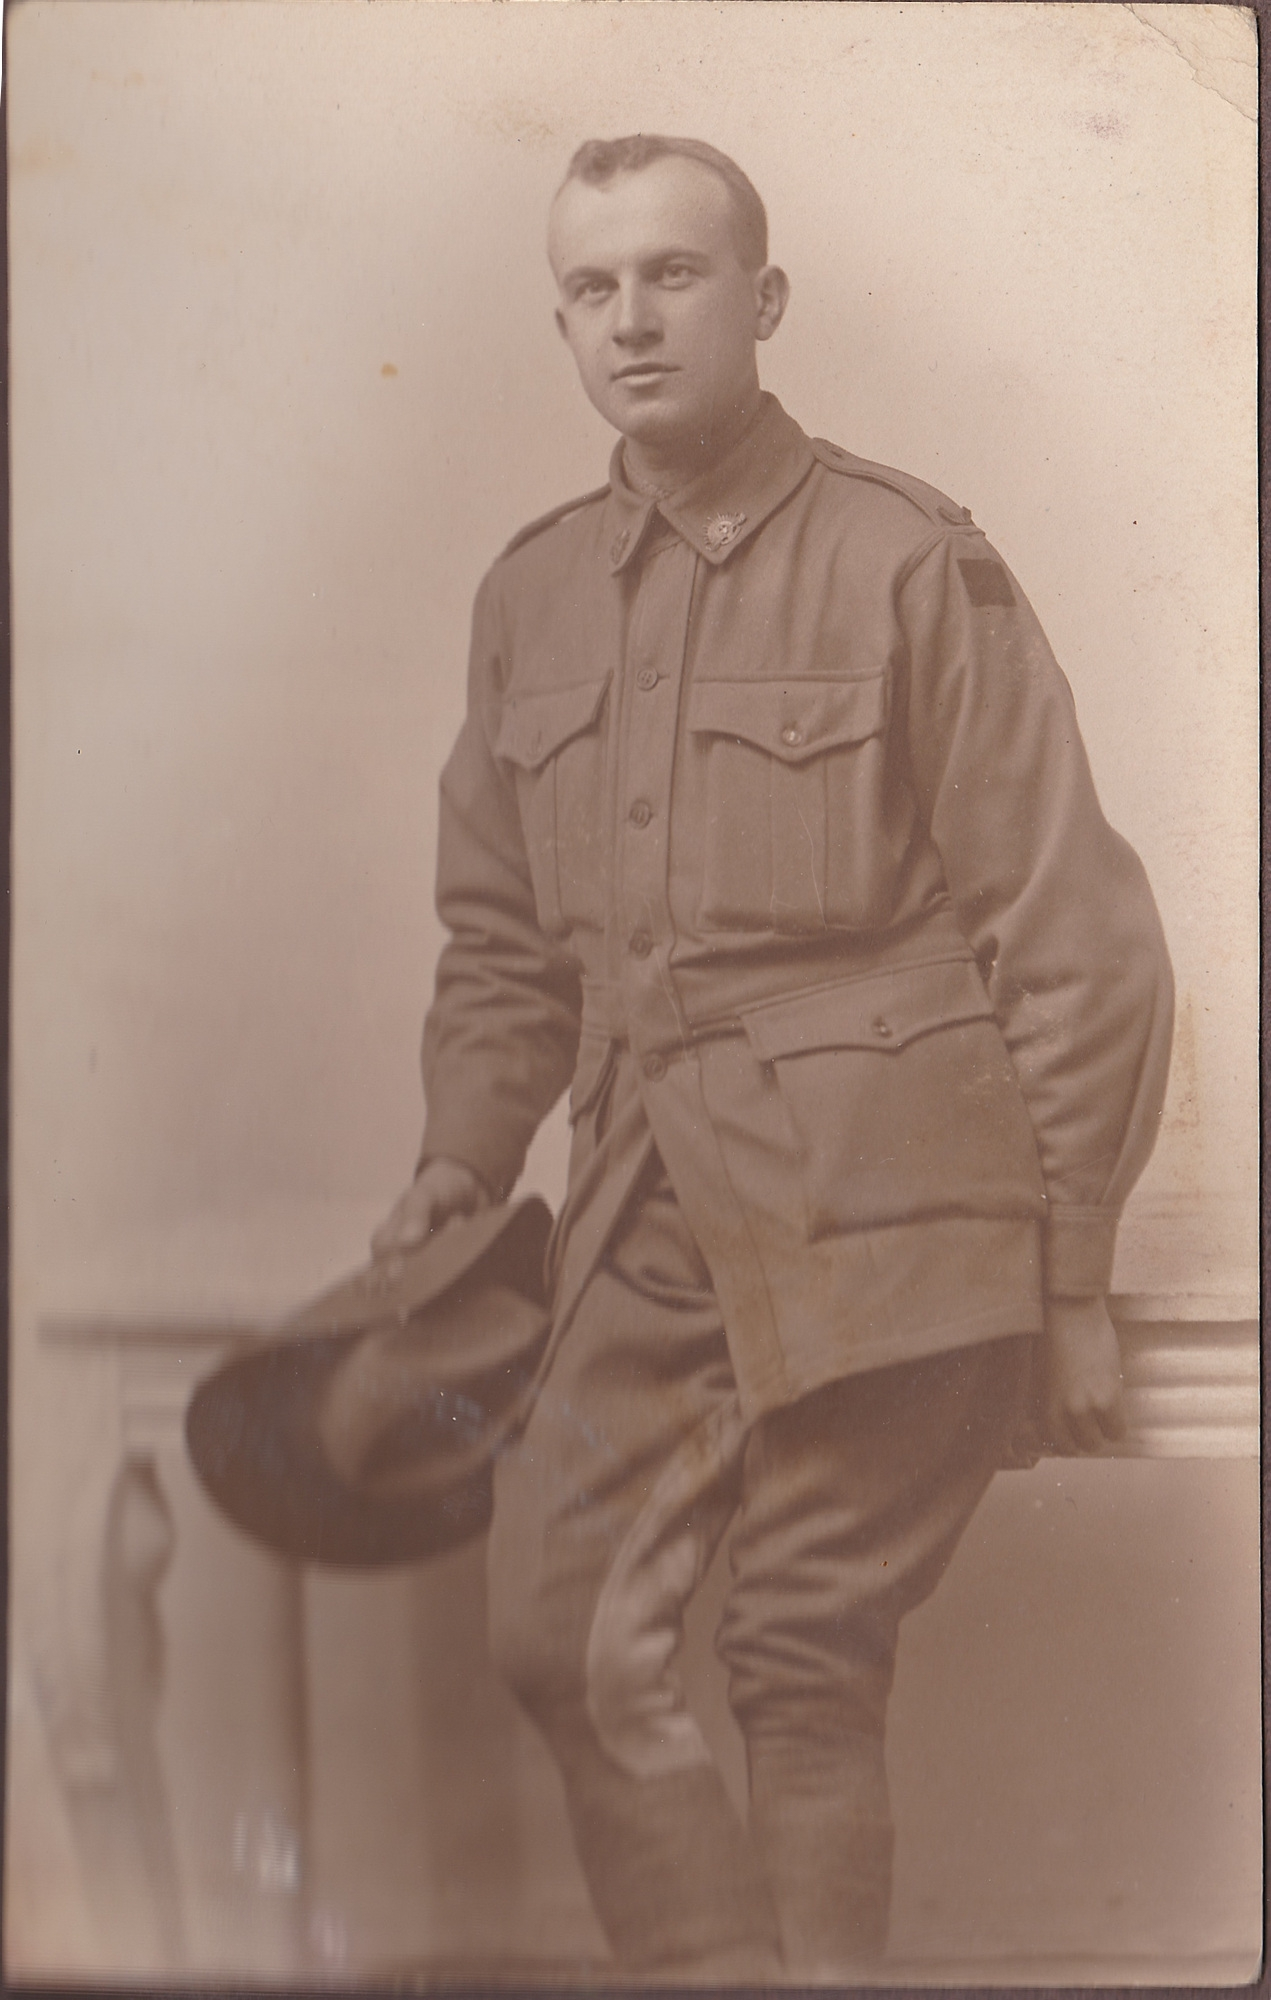 Man in uniform leaning on low wall.